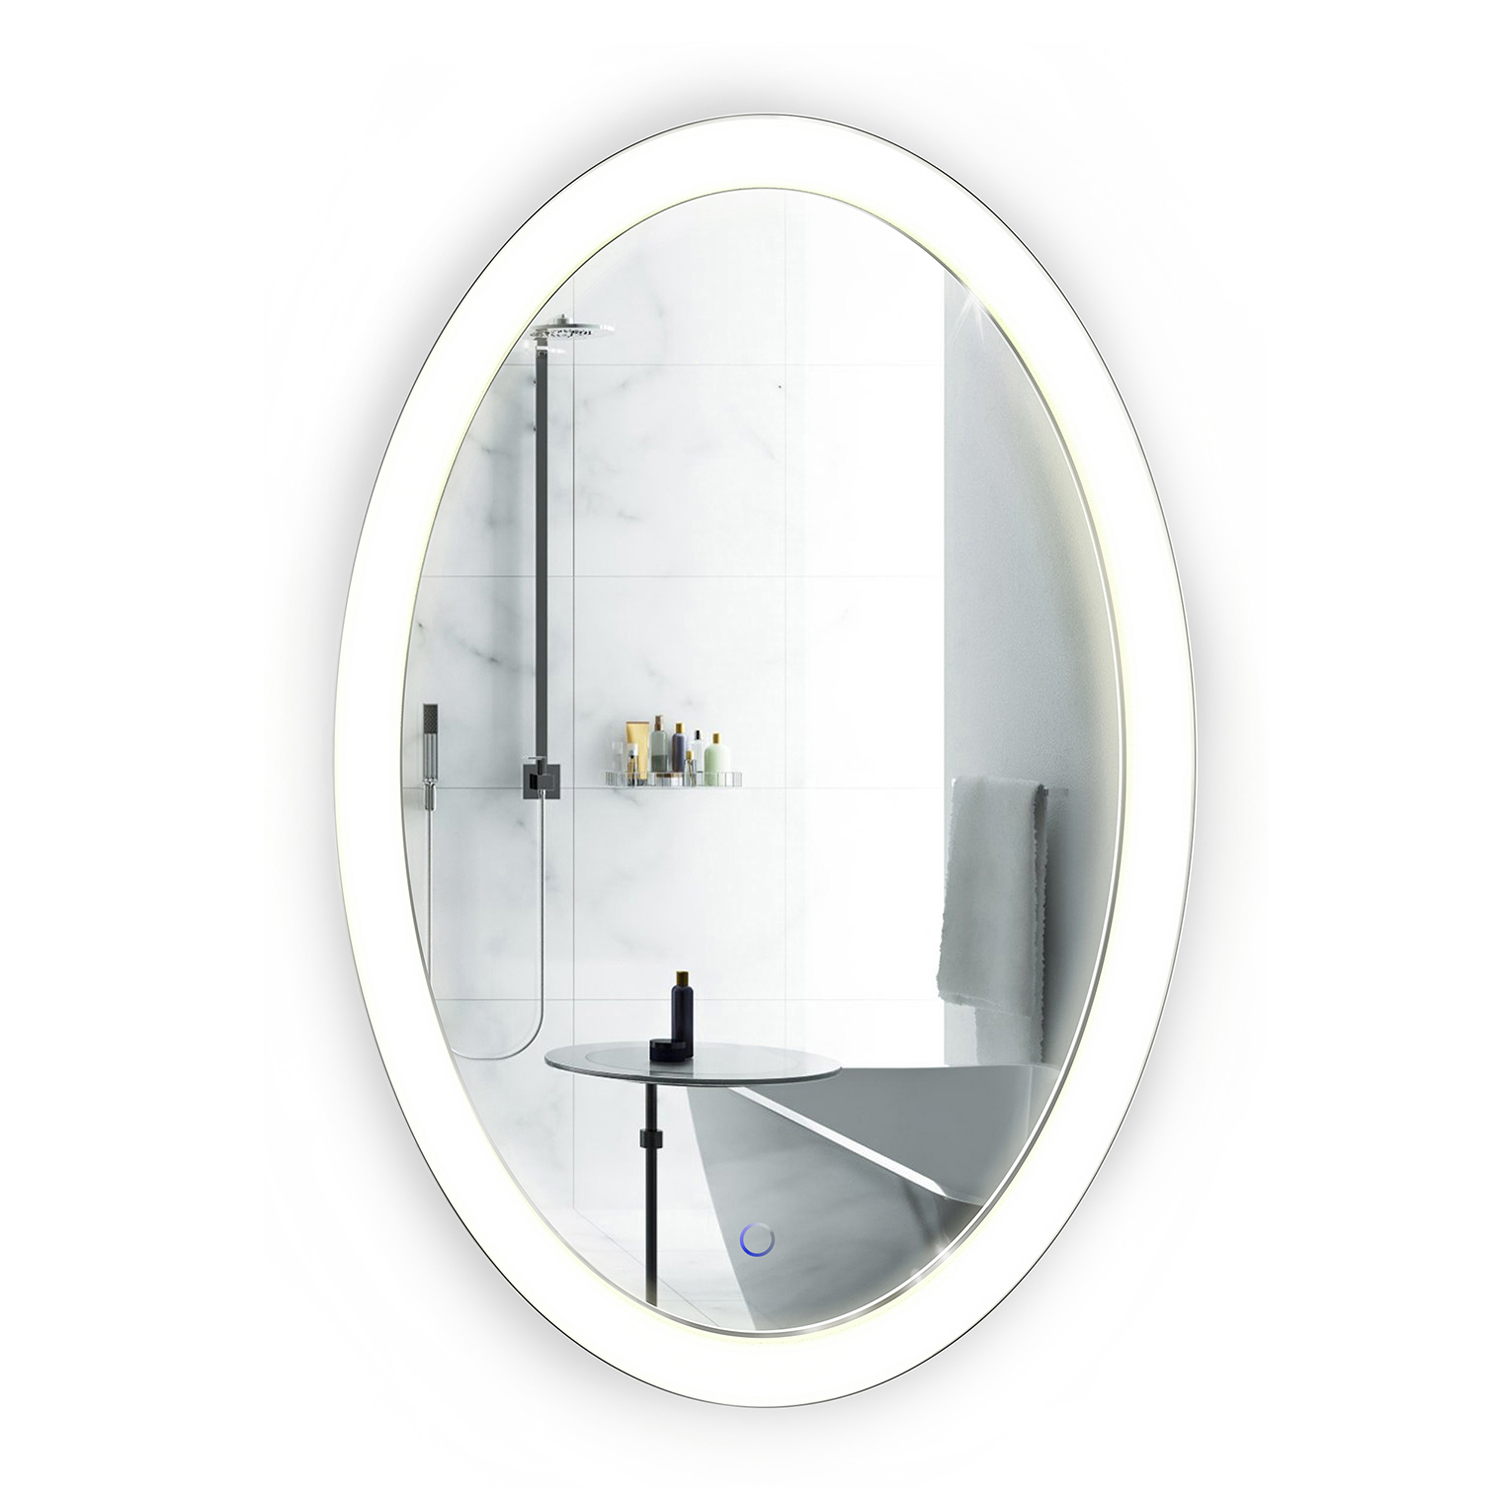 "Lighted Bathroom Wall Mirror Large: LED 20""x30"" Oval Bathroom Mirror Lighted With Dimmer"